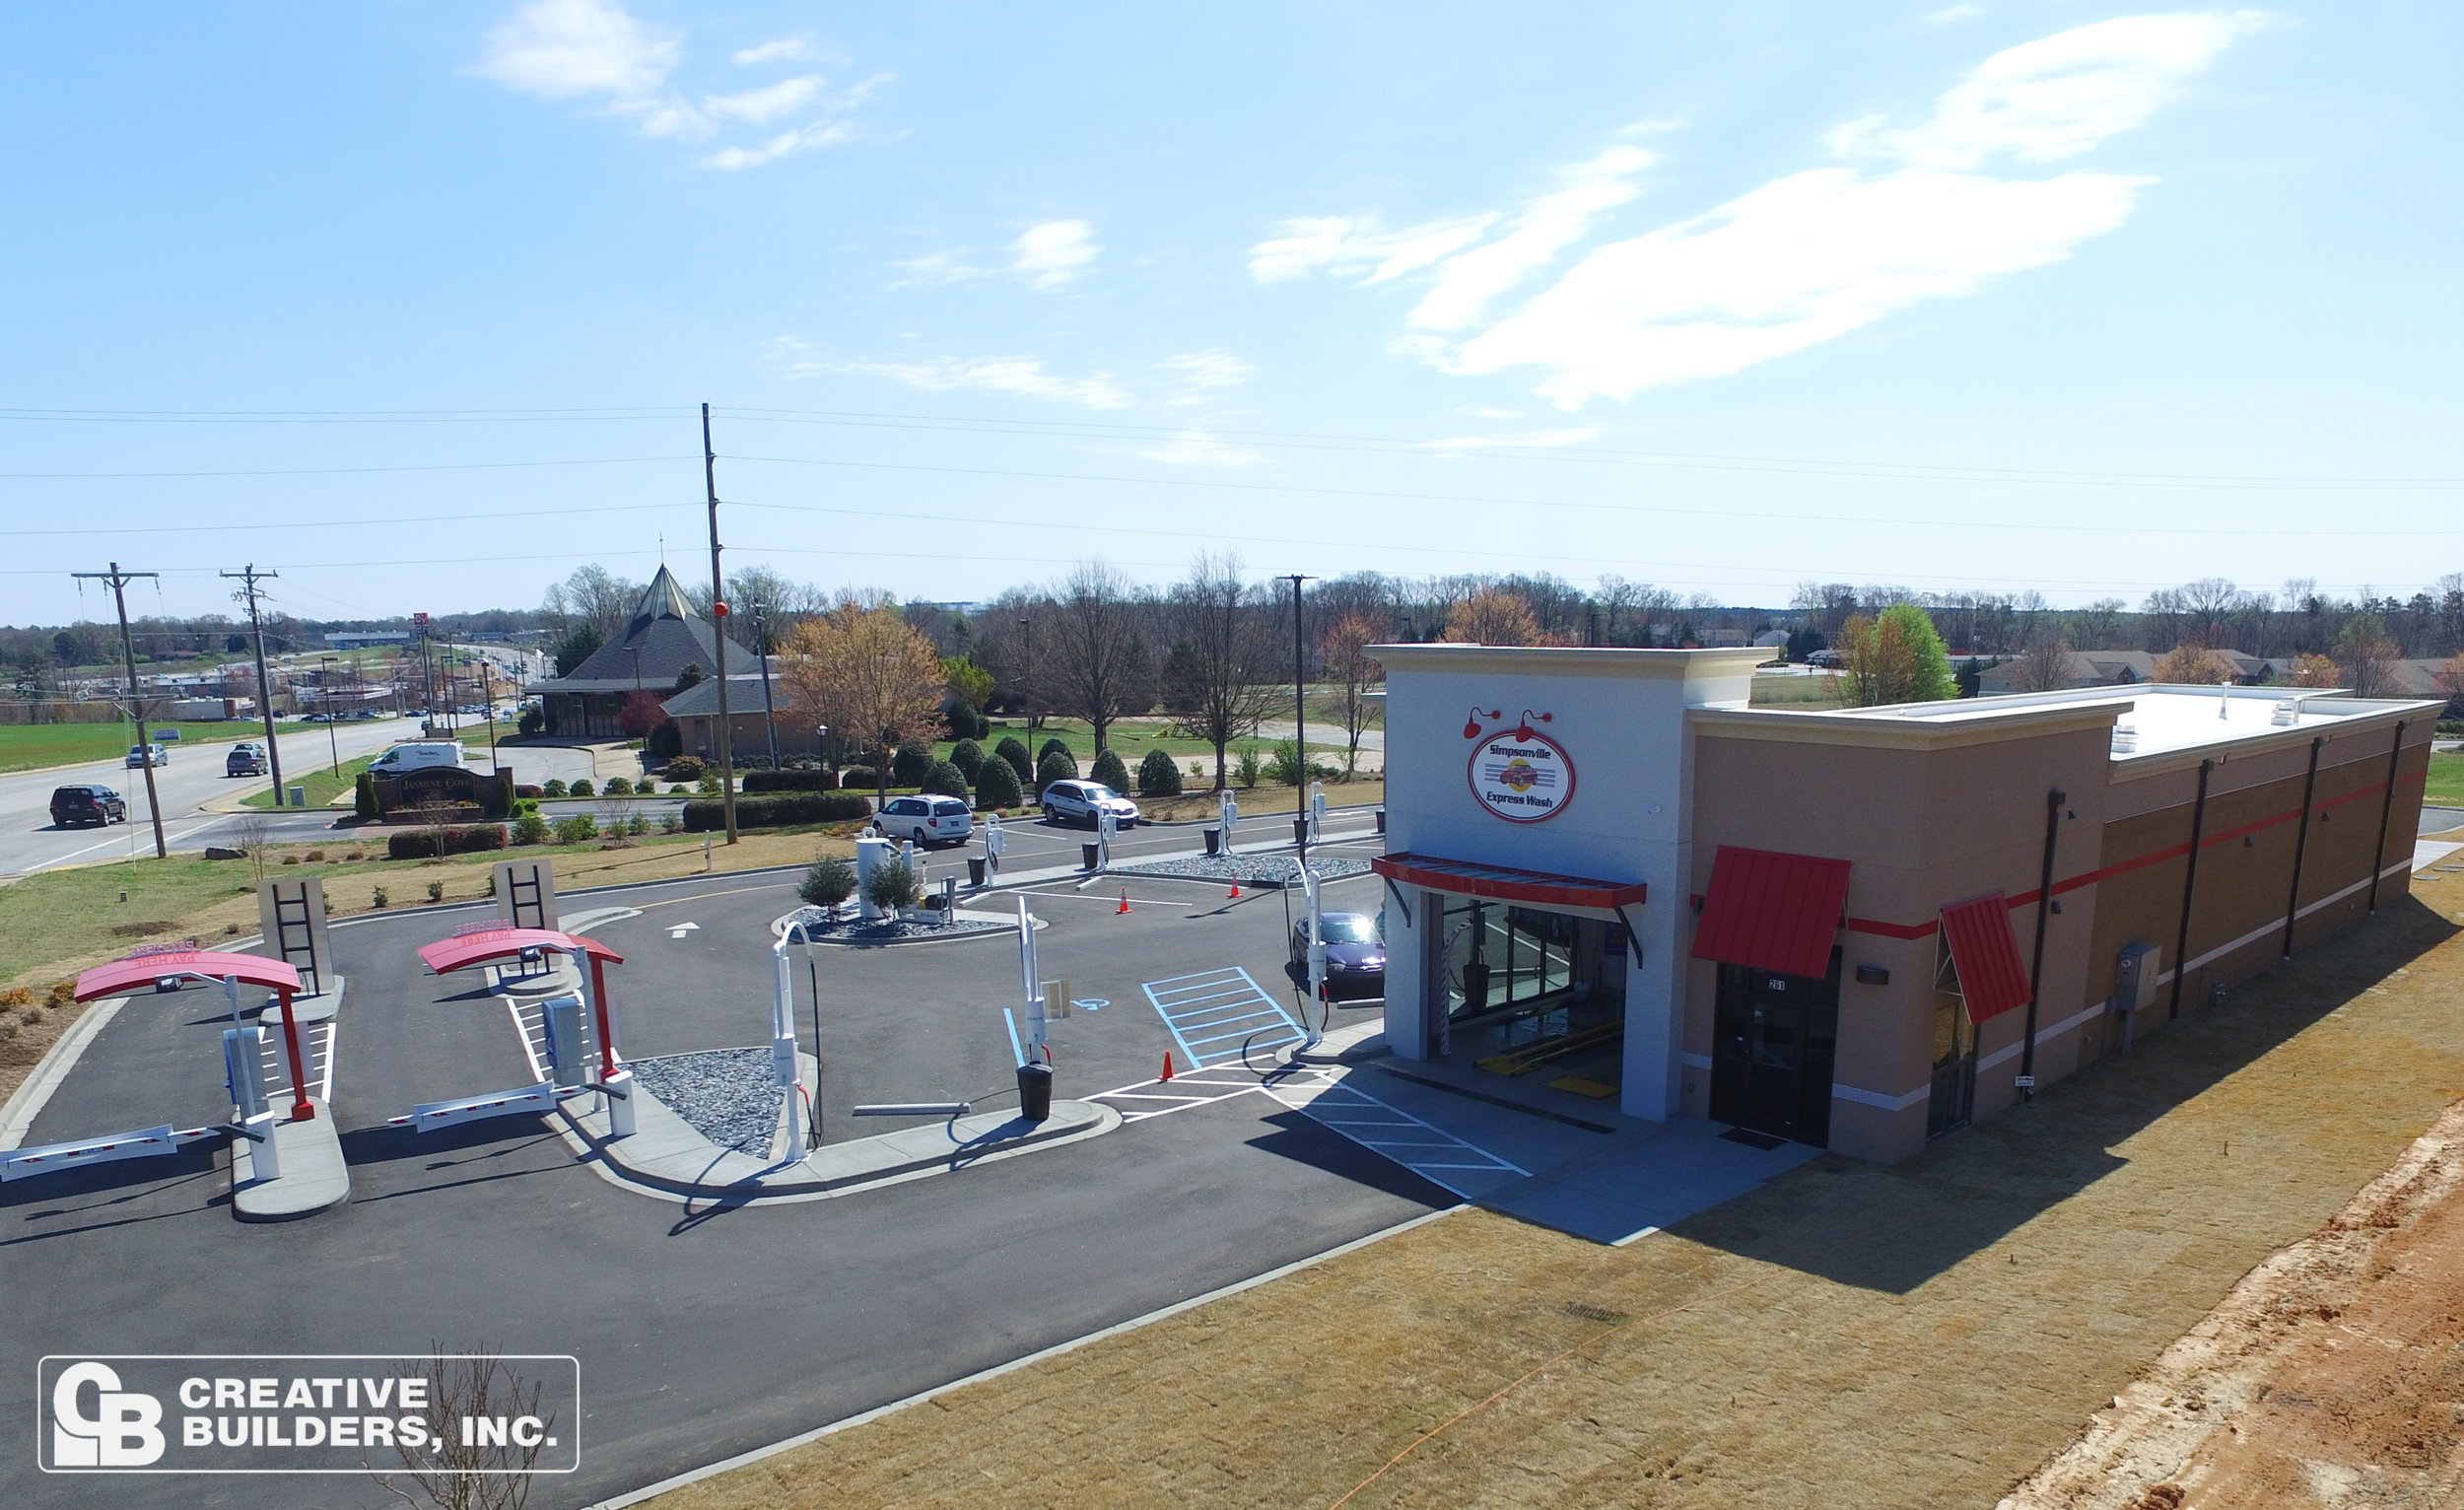 simpsonville_express_wash-1.jpg